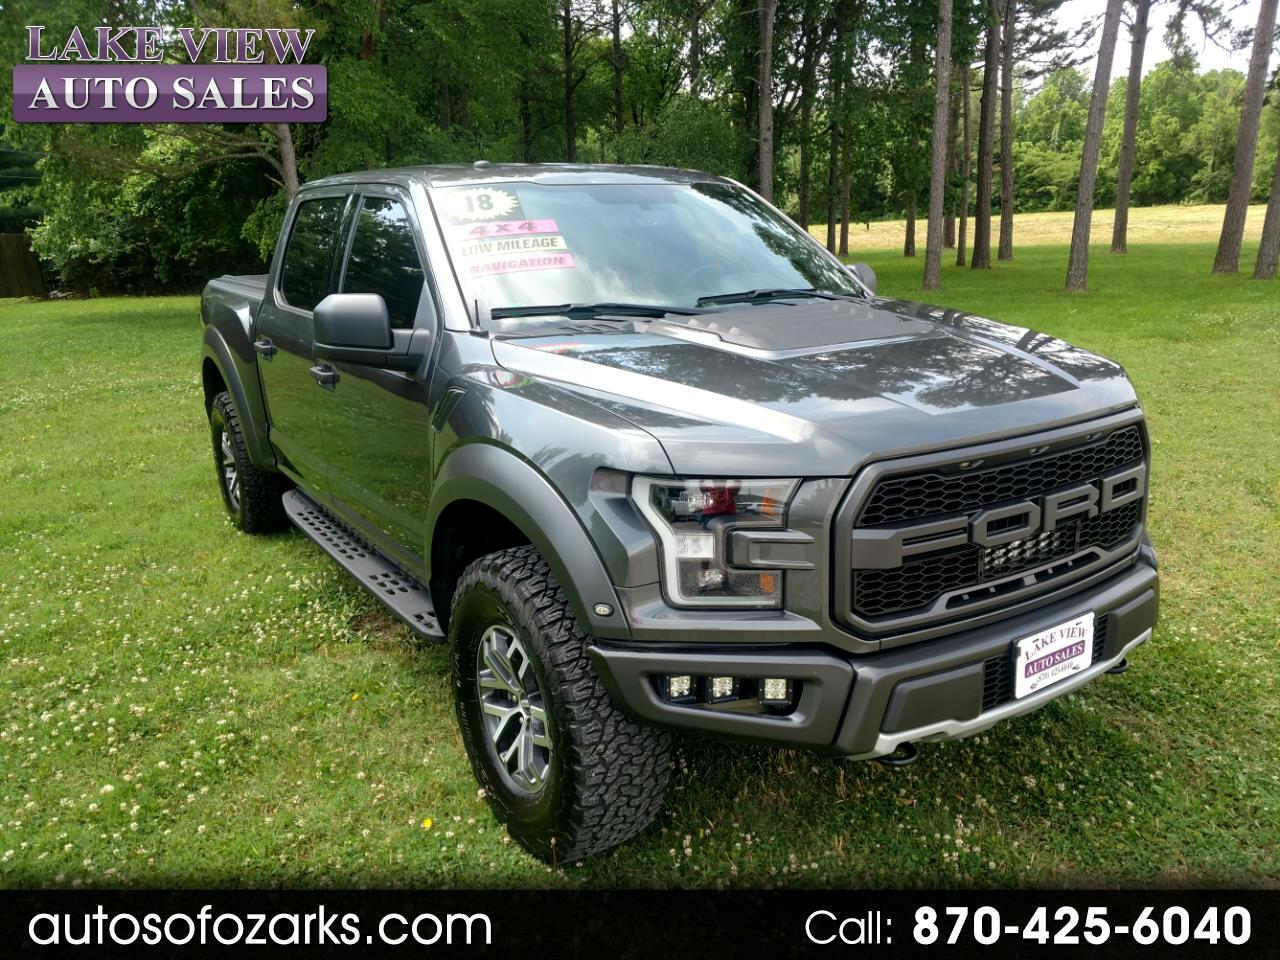 Lakeview Auto Sales >> Used Cars Trucks And Vans For Sale Autoexchange Com